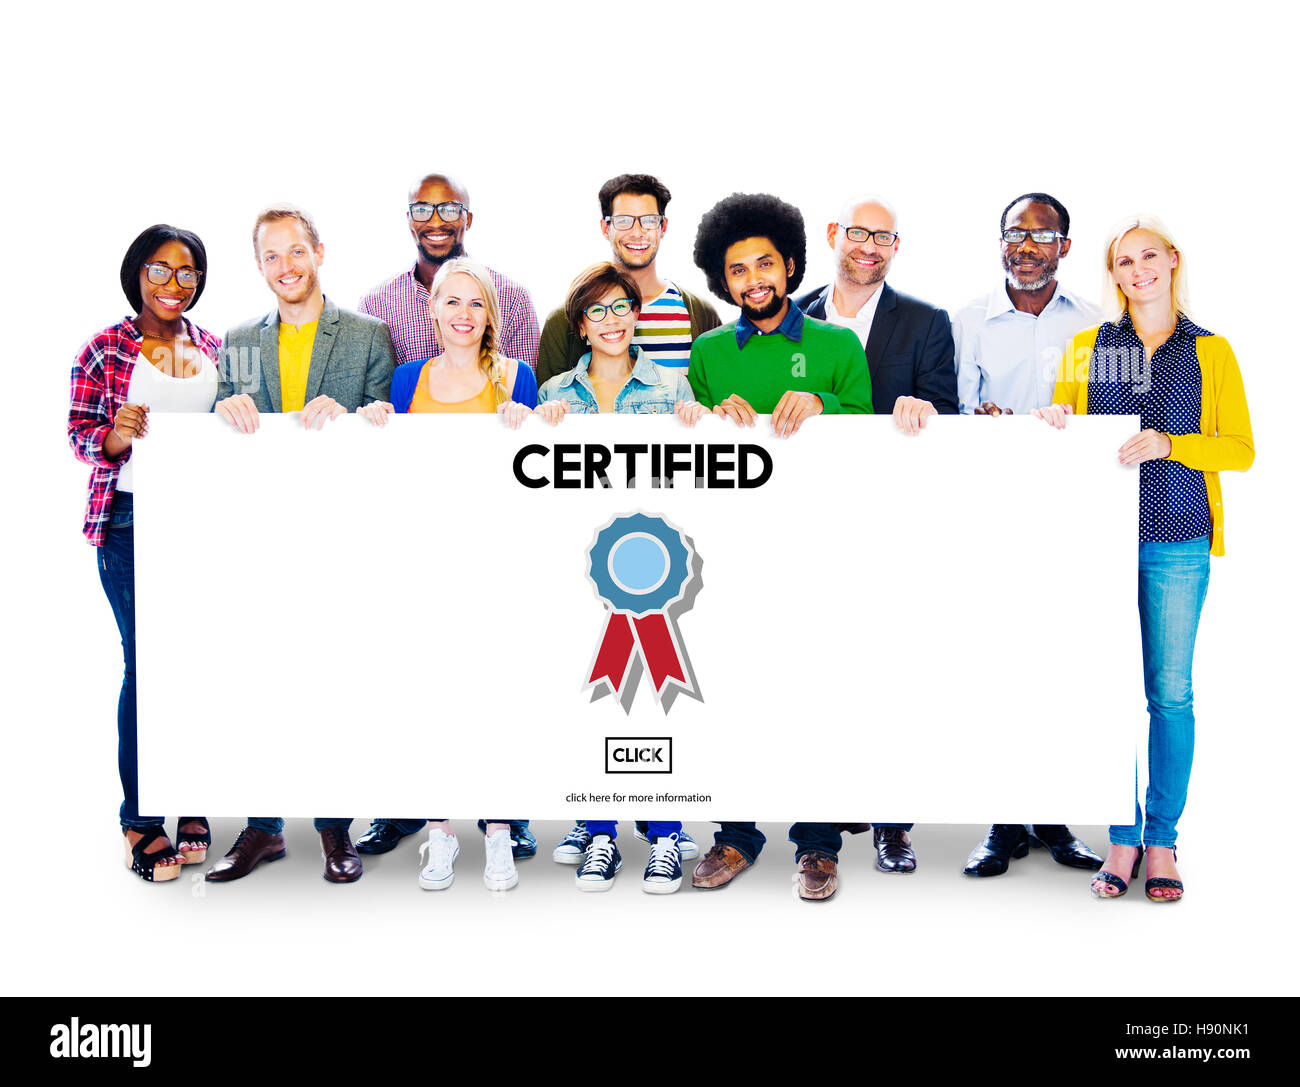 Certified Approval Agreement Confirmation Concept - Stock Image